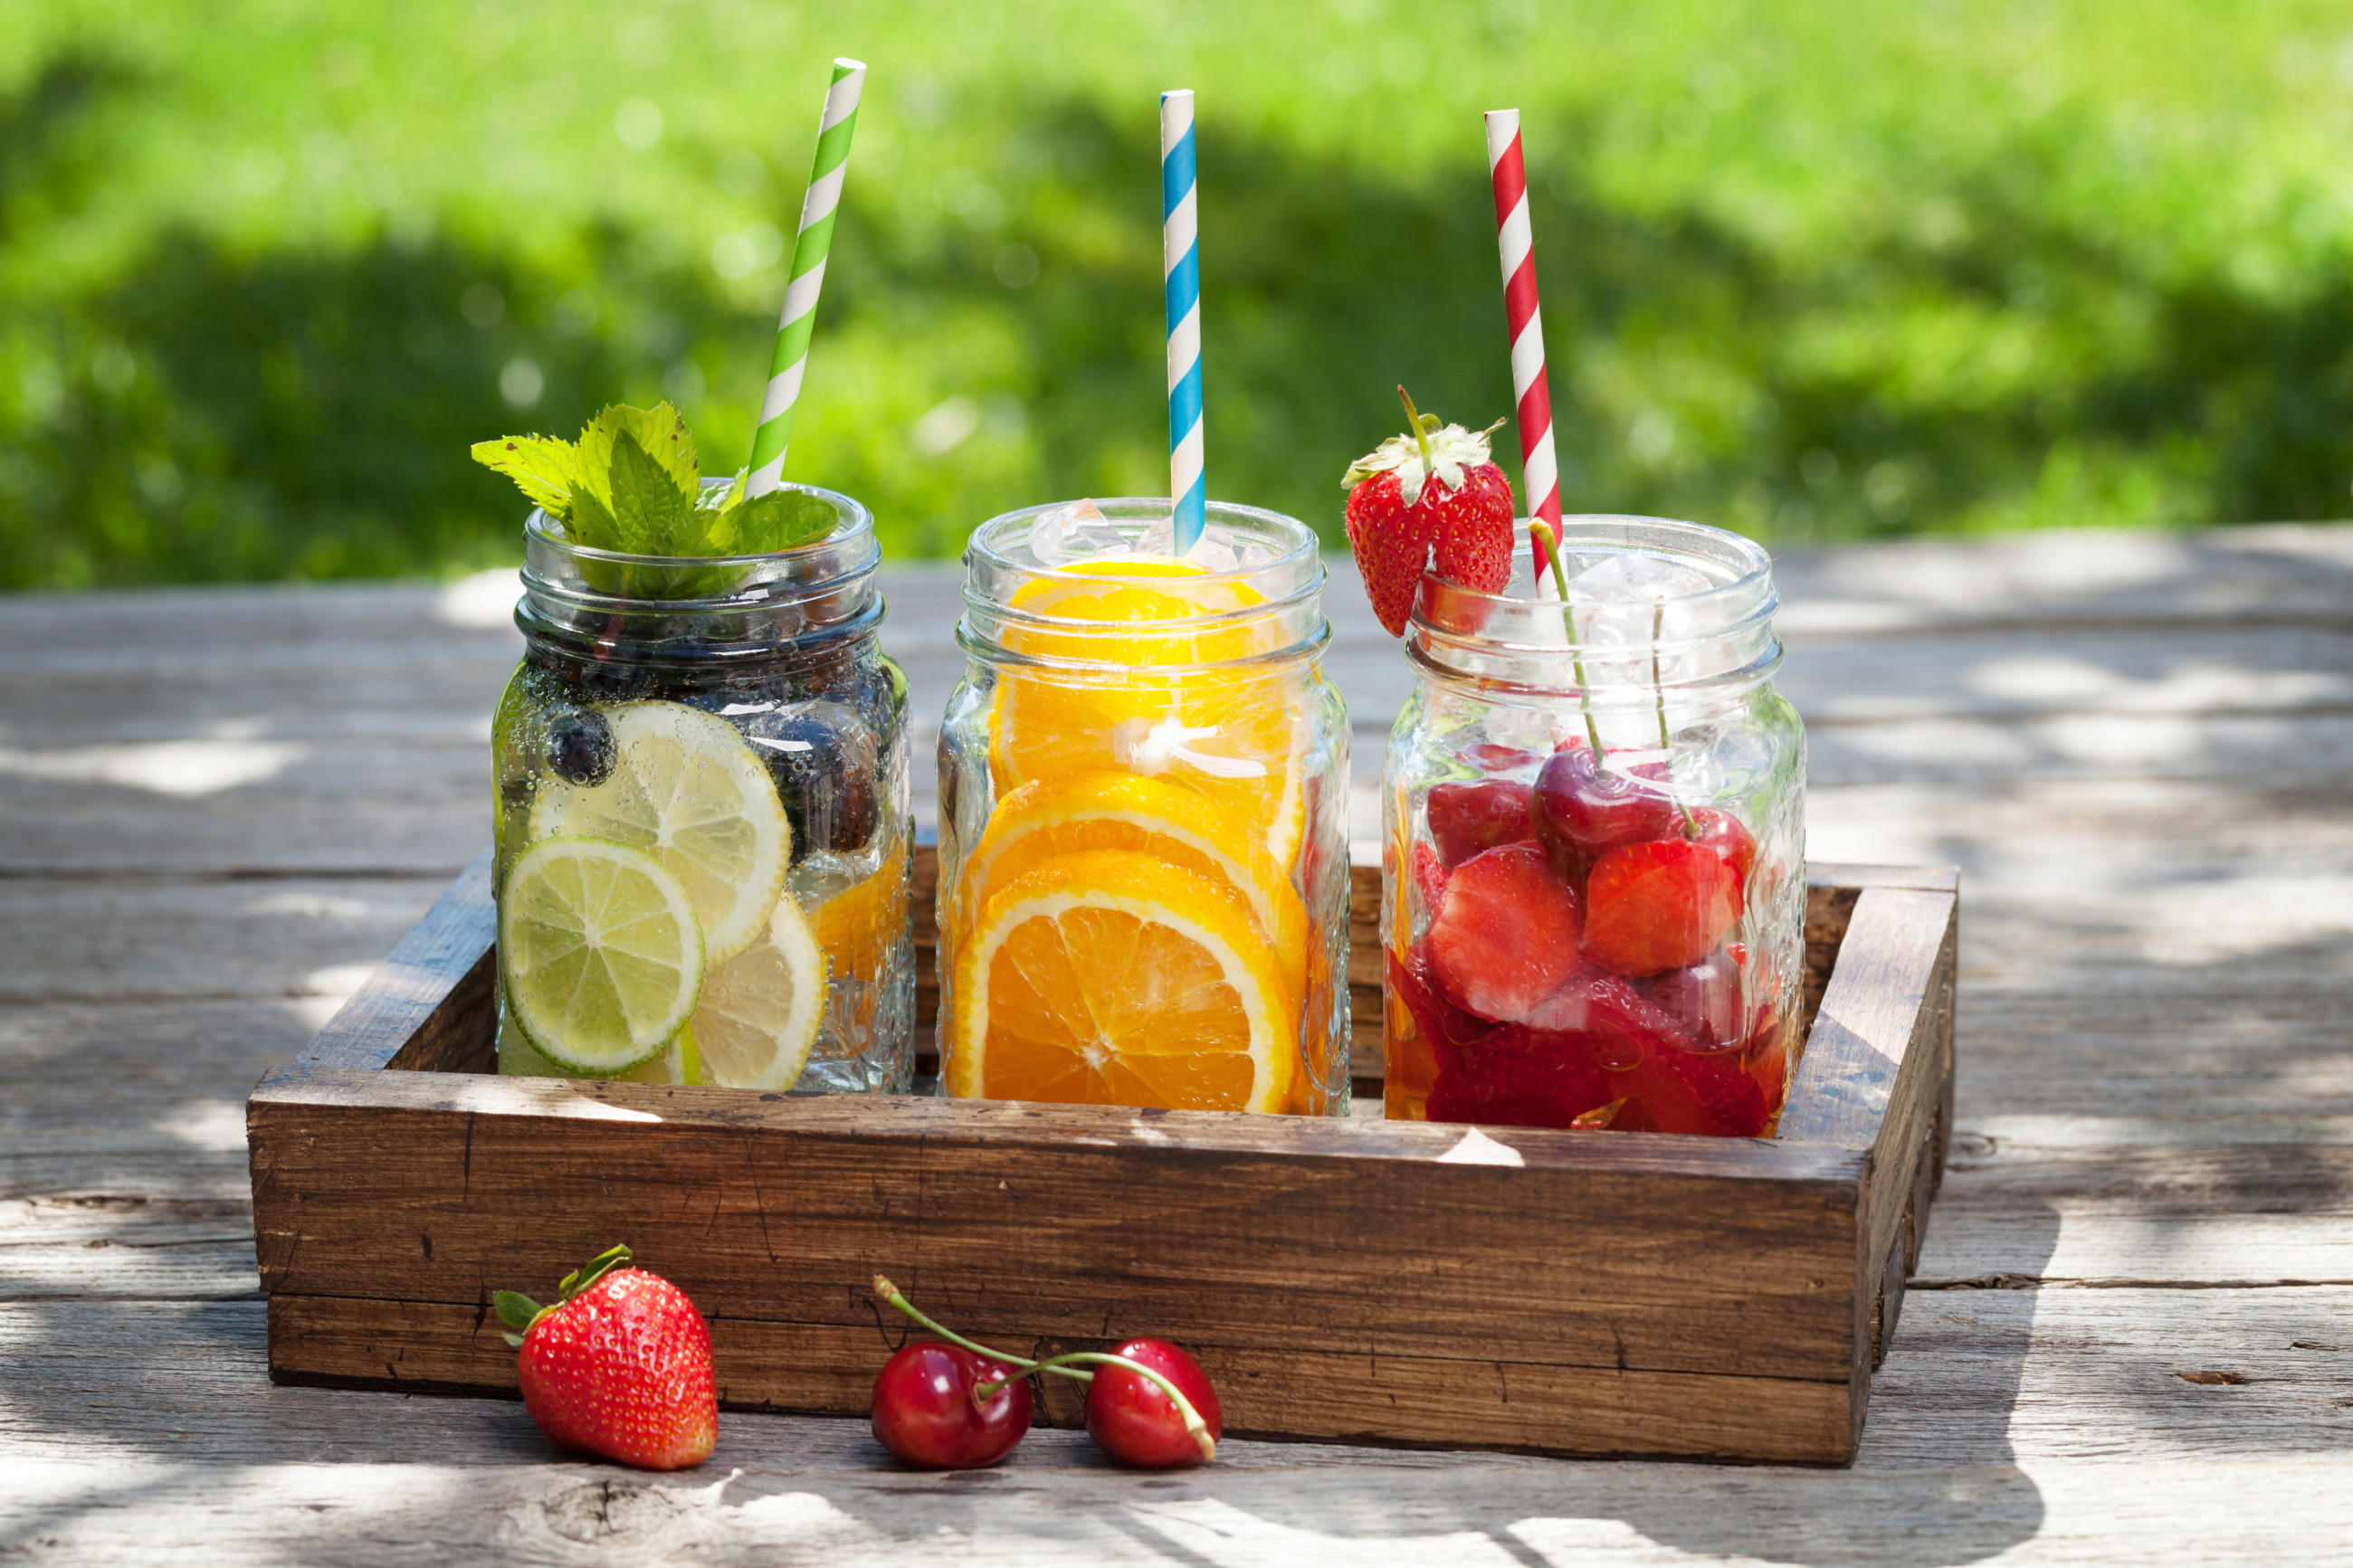 Three jars of fruit drinks with straws in a wooden box